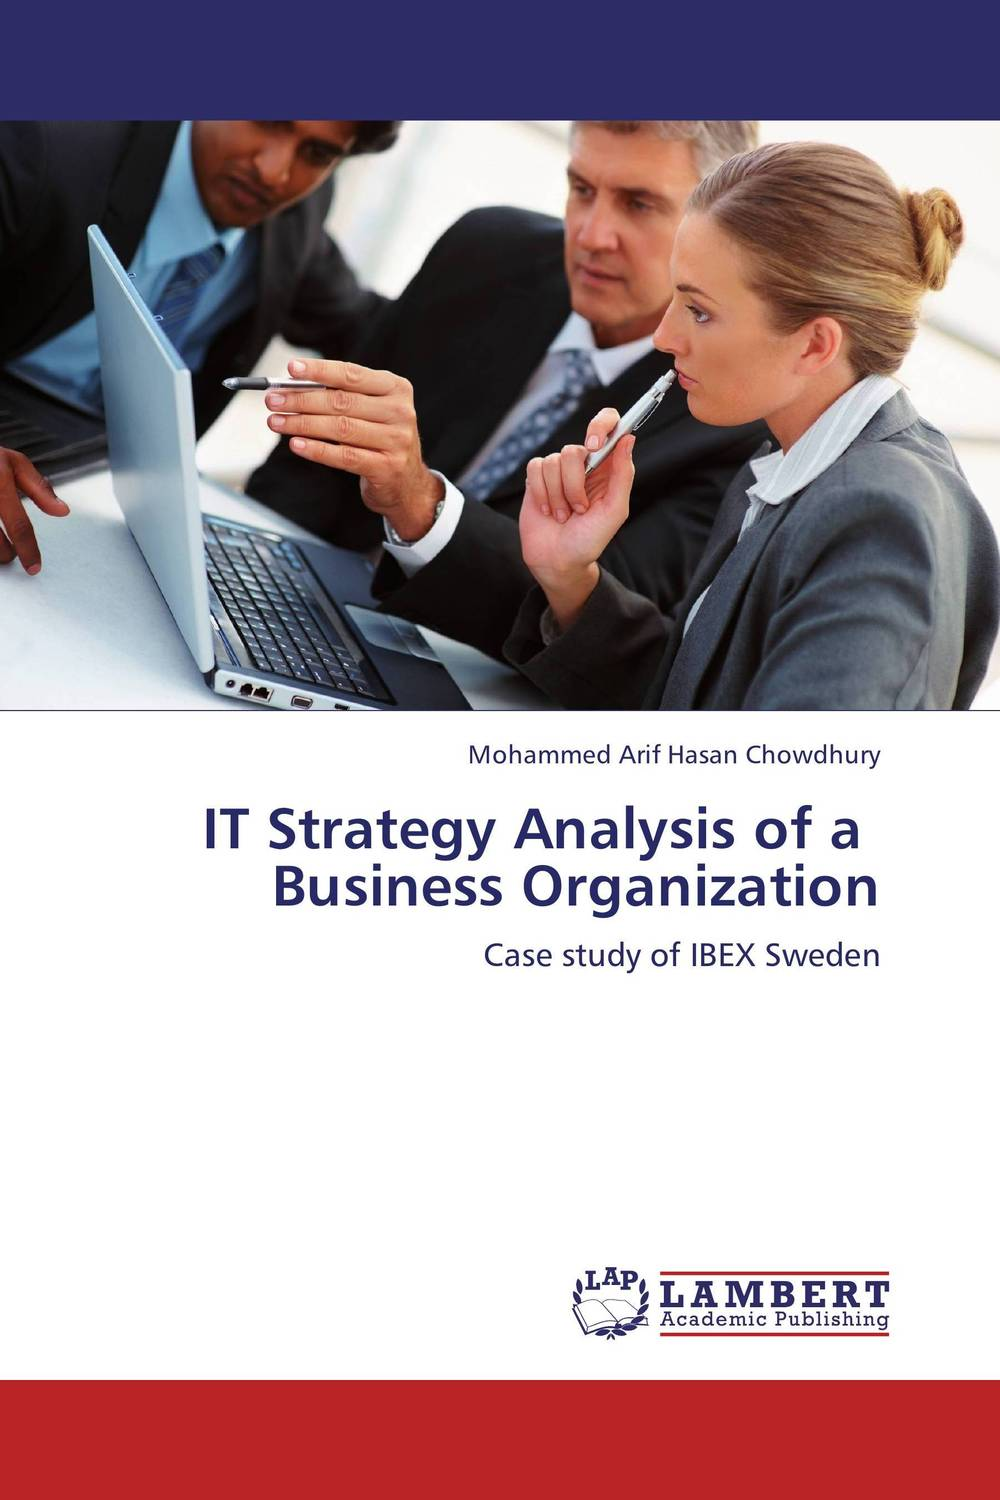 IT Strategy Analysis of a Business Organization jeffrey sampler l bringing strategy back how strategic shock absorbers make planning relevant in a world of constant change